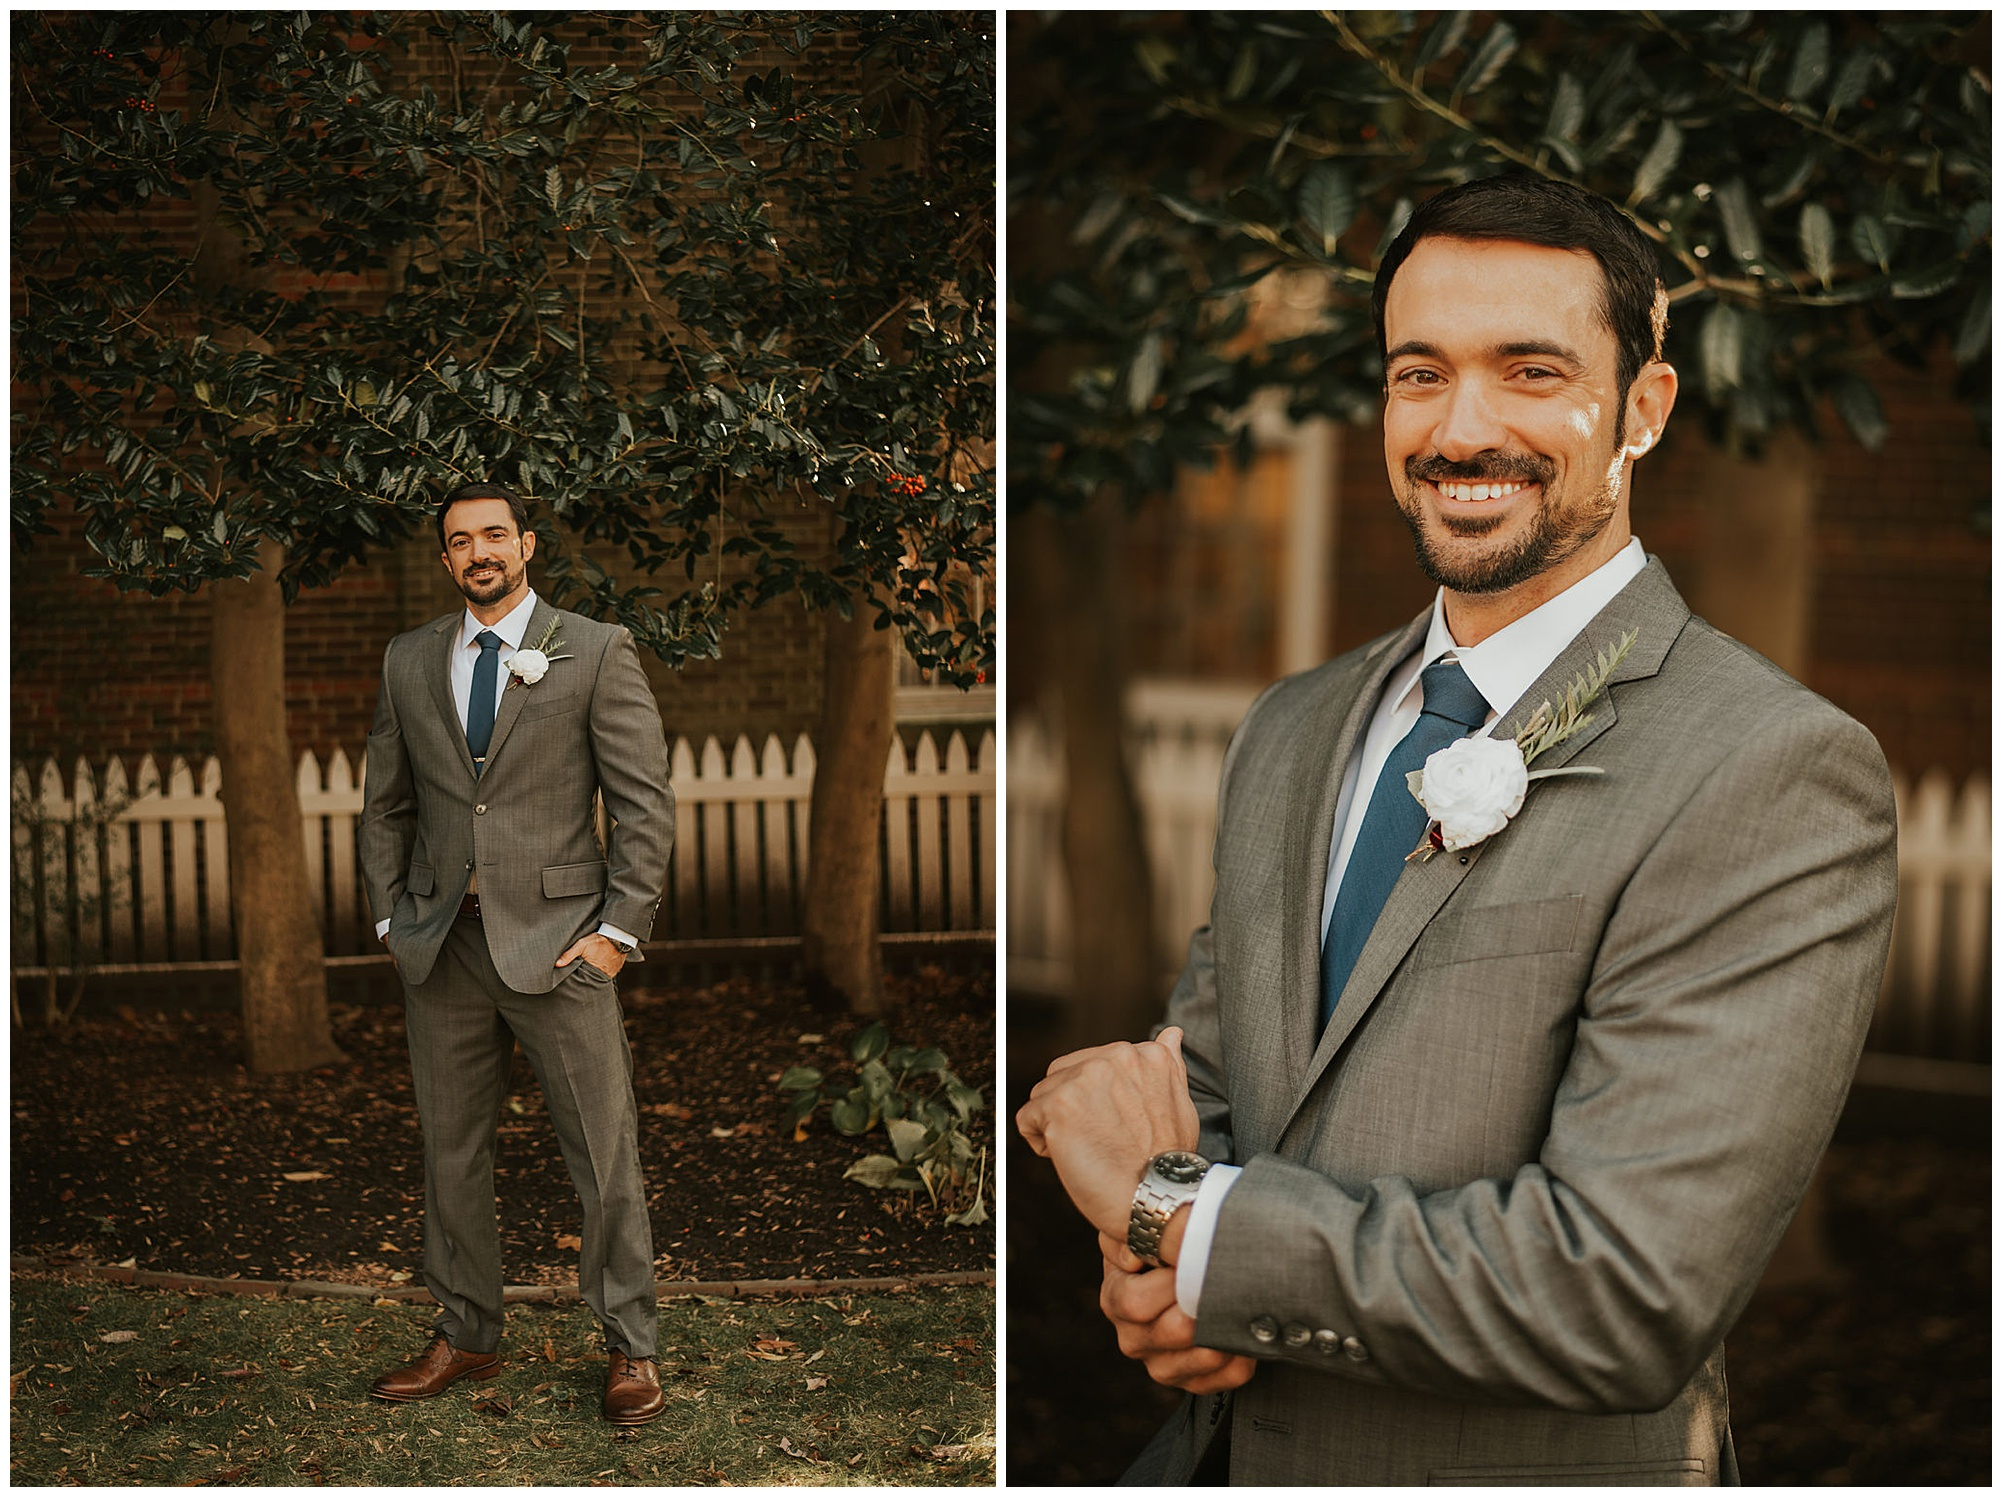 groom photo inspo outdoors with magnolia trees. southern style wedding inspiration. moody eastern shore style.